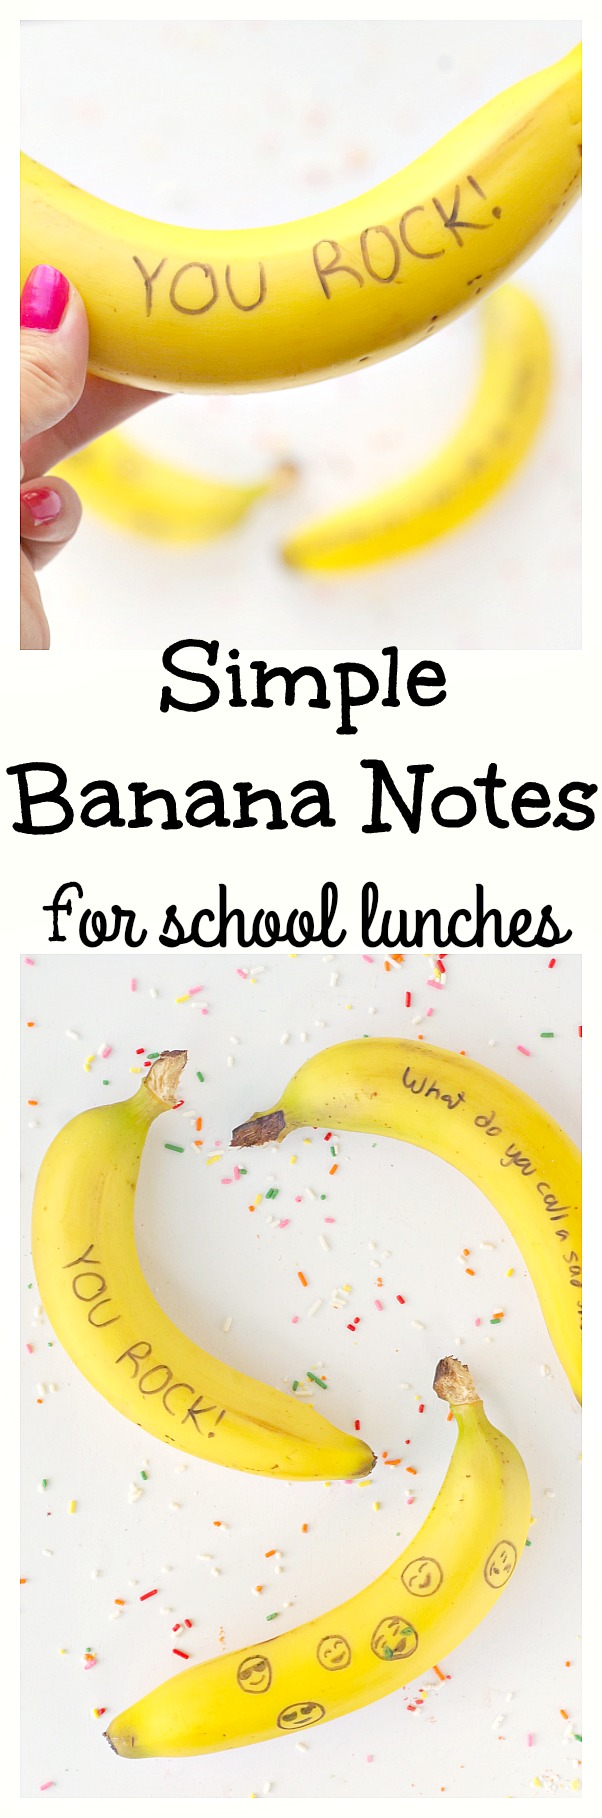 Simple Banana Notes for school lunches! You can leave sweet notes for your kid on their fruit. It's a simple way to show you care.